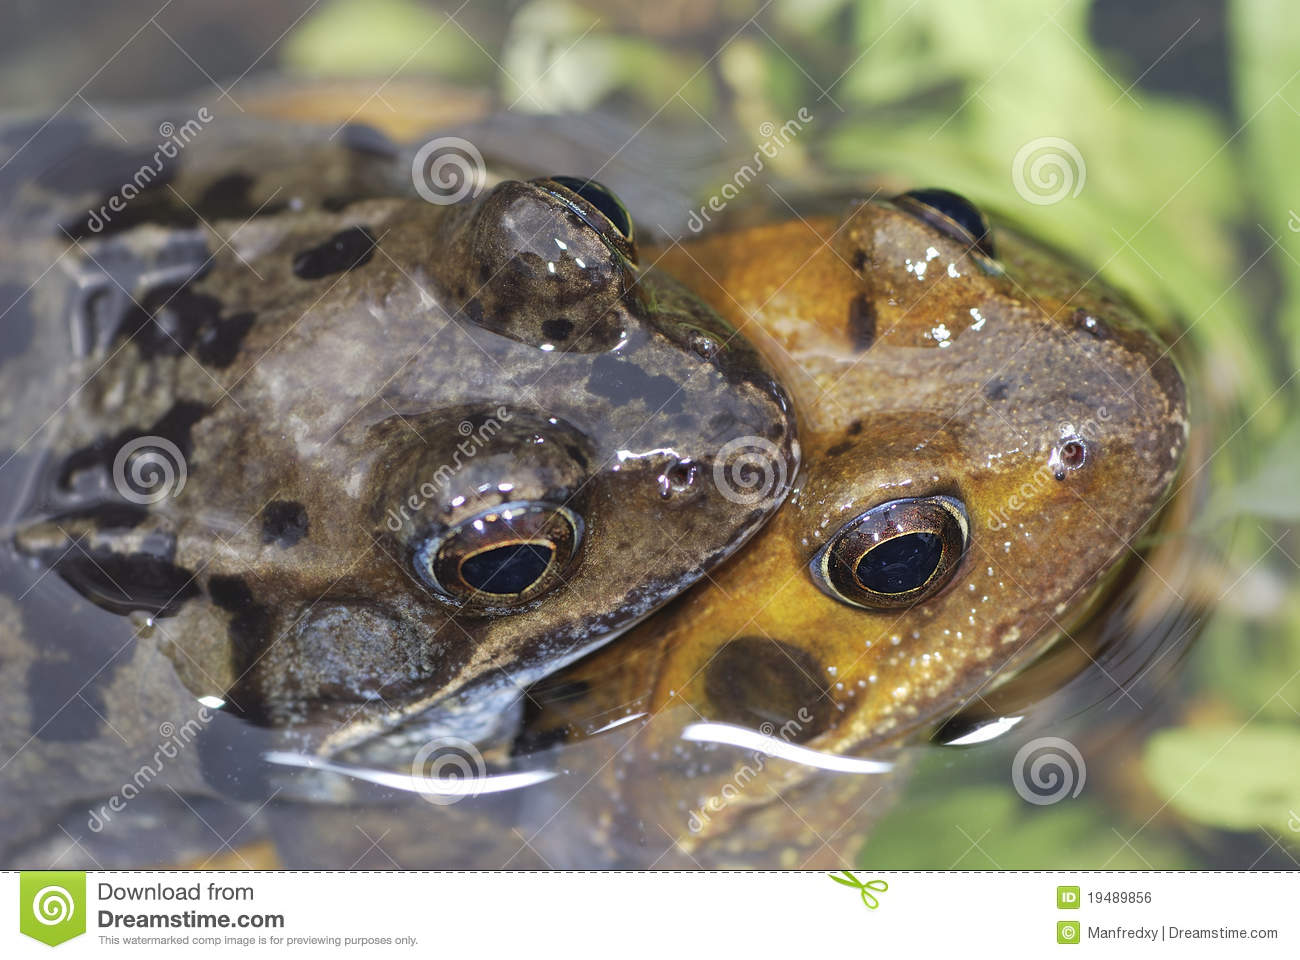 Royalty Free Stock Image: Frog sex: http://dreamstime.com/royalty-free-stock-image-frog-sex-image19489856